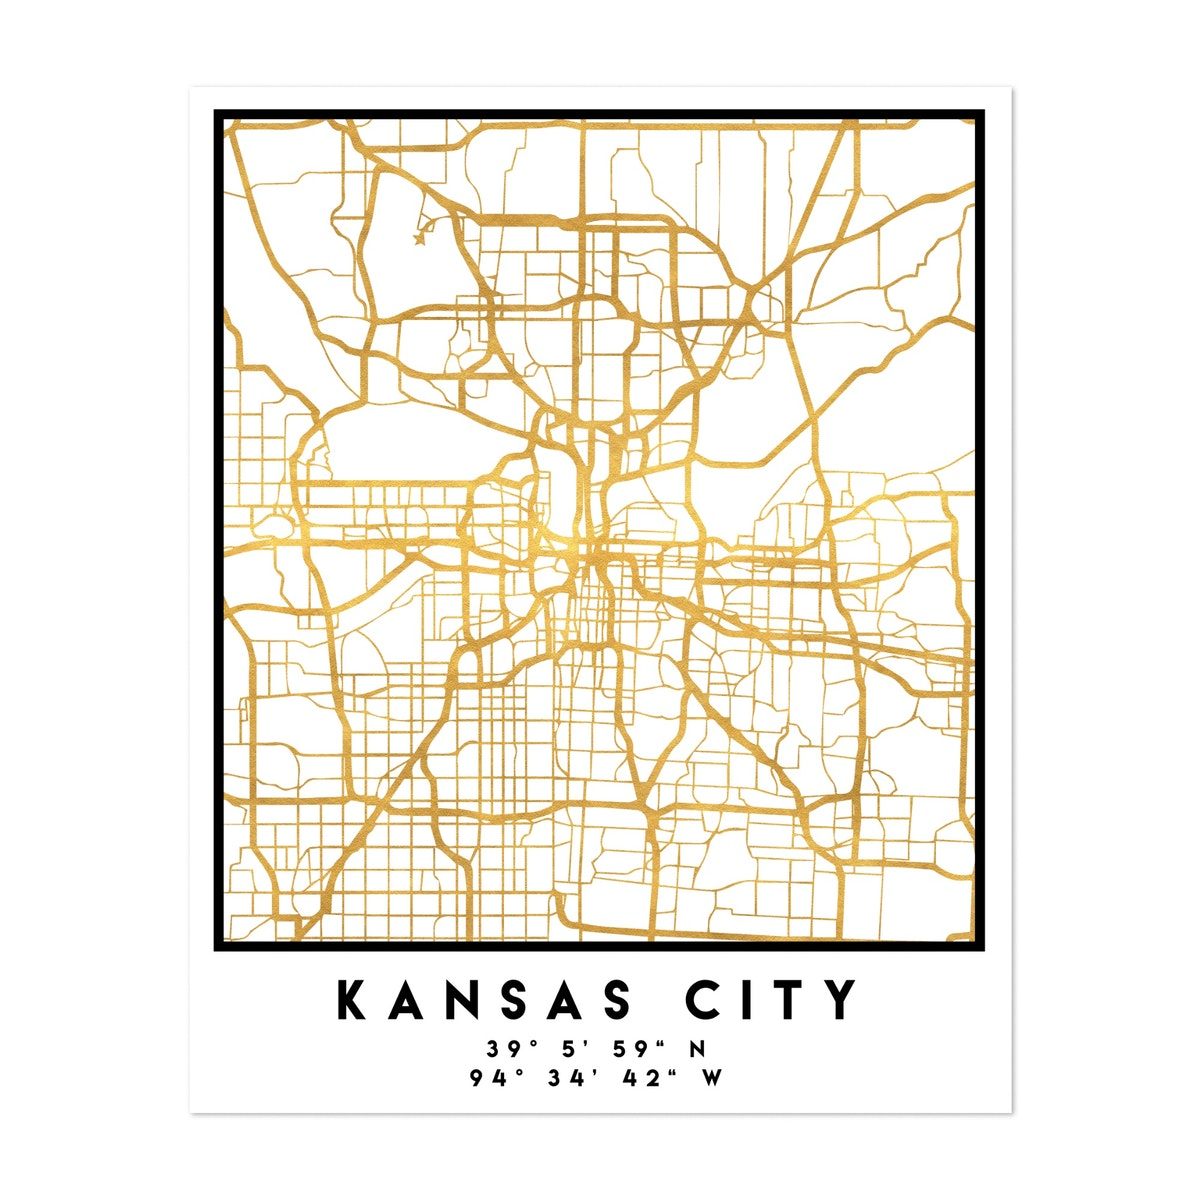 Kansas City Street Map